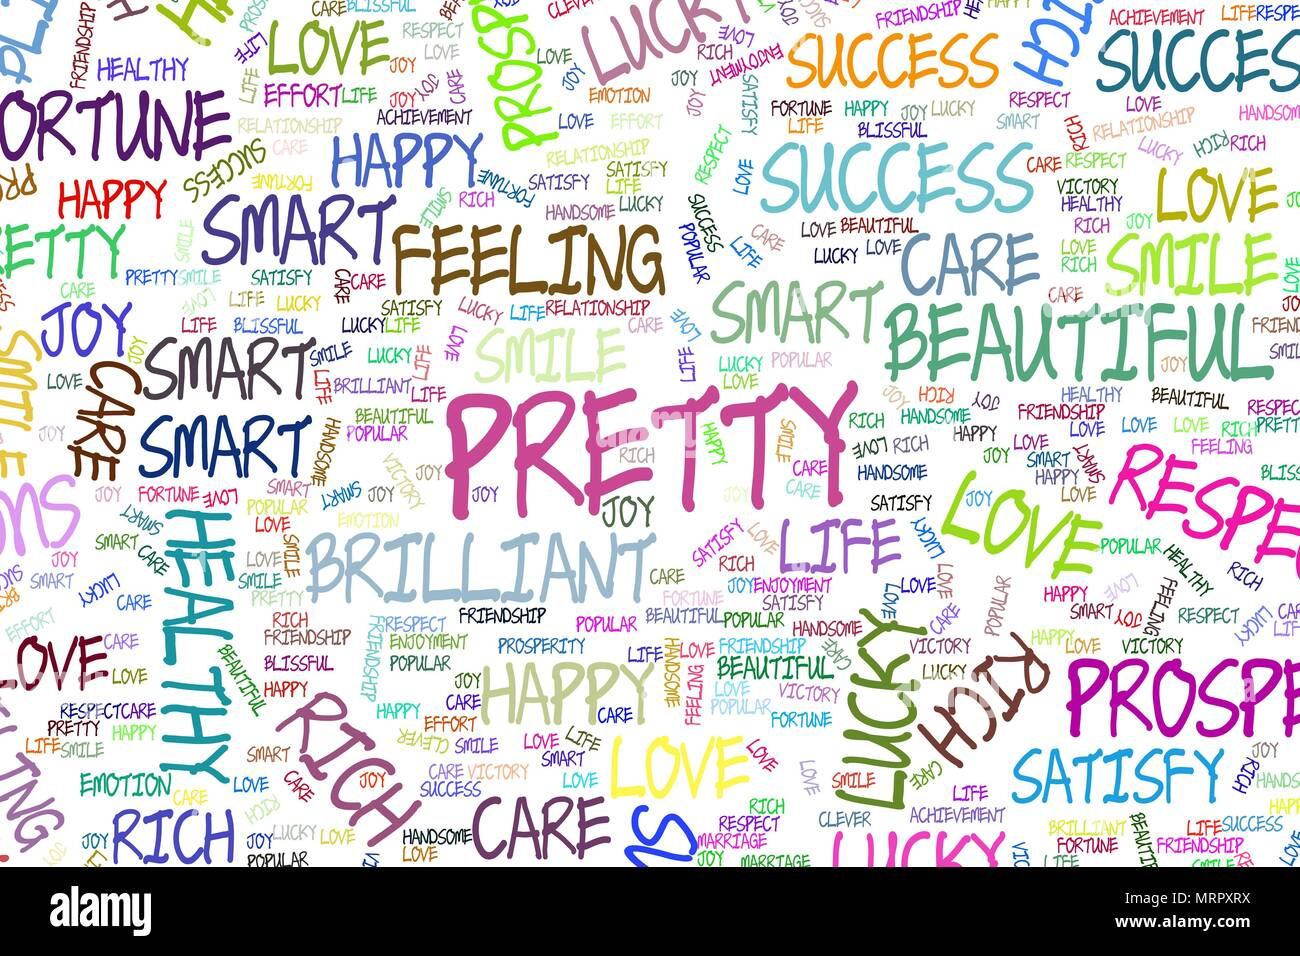 Illustrations Of Positive Emotion Word Cloud Good For Web Page